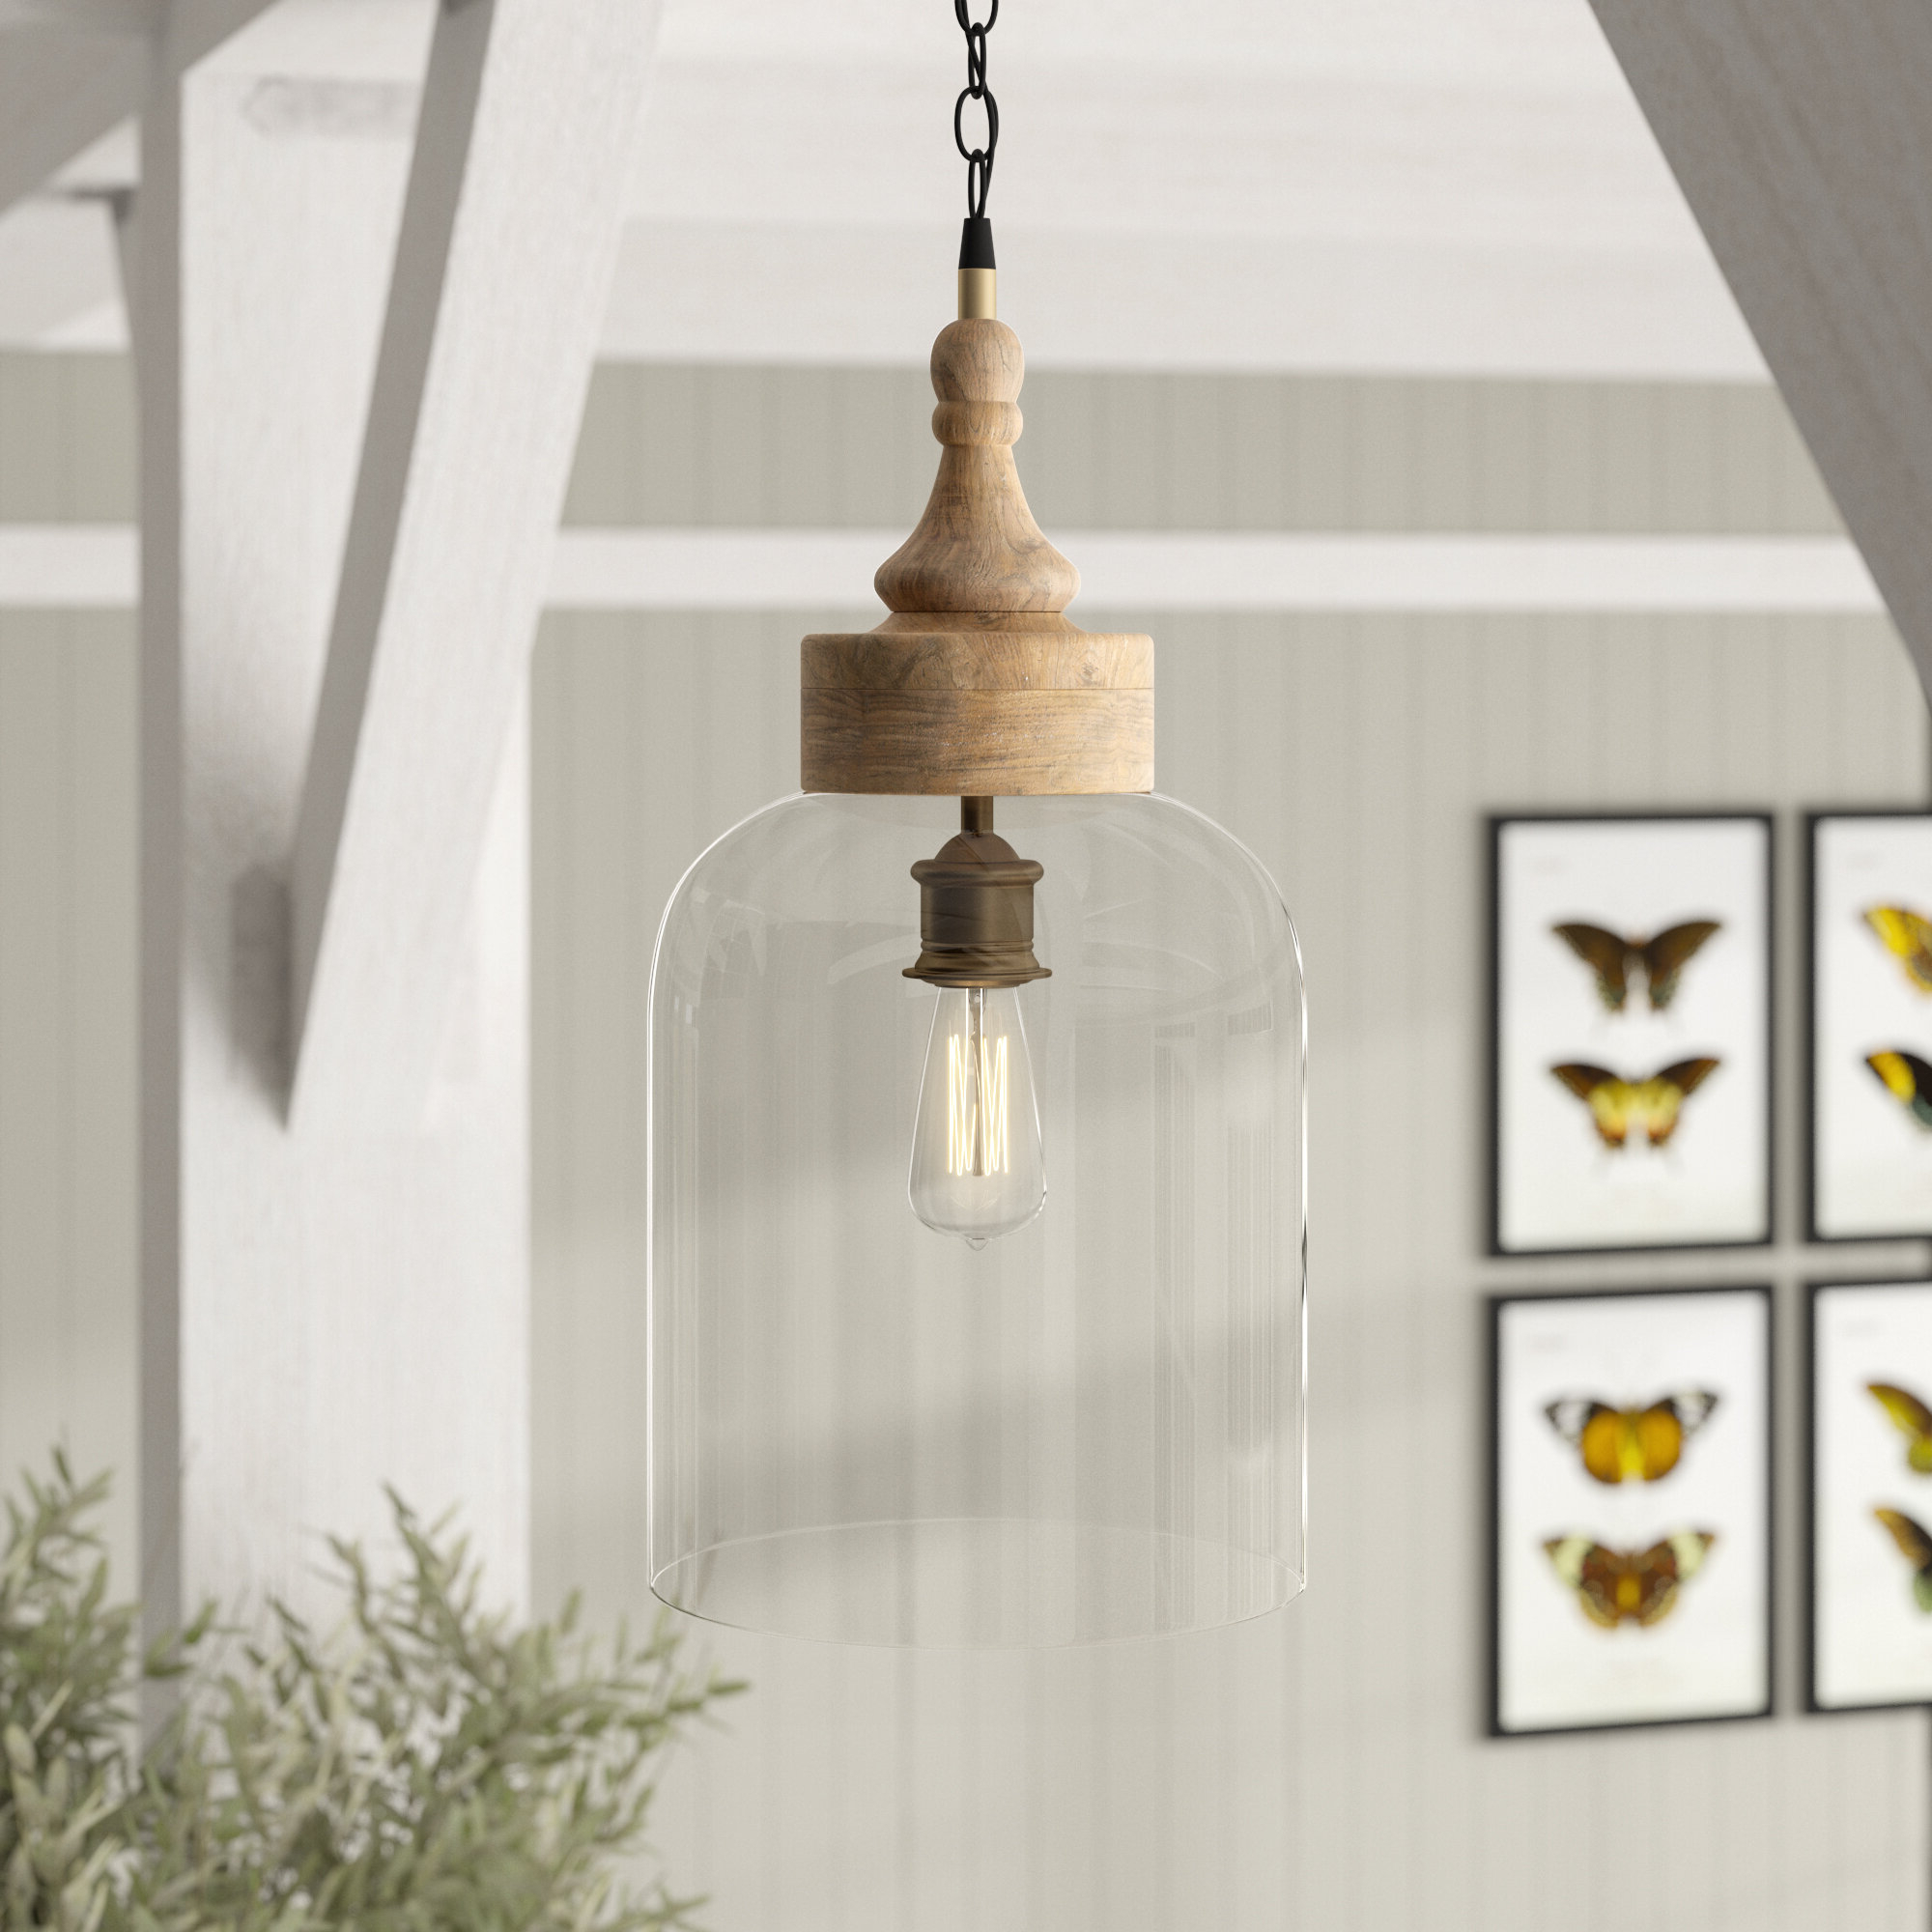 Moyer 1 Light Single Cylinder Pendants Intended For Best And Newest Olivo 1 Light Bell Pendant (View 16 of 25)